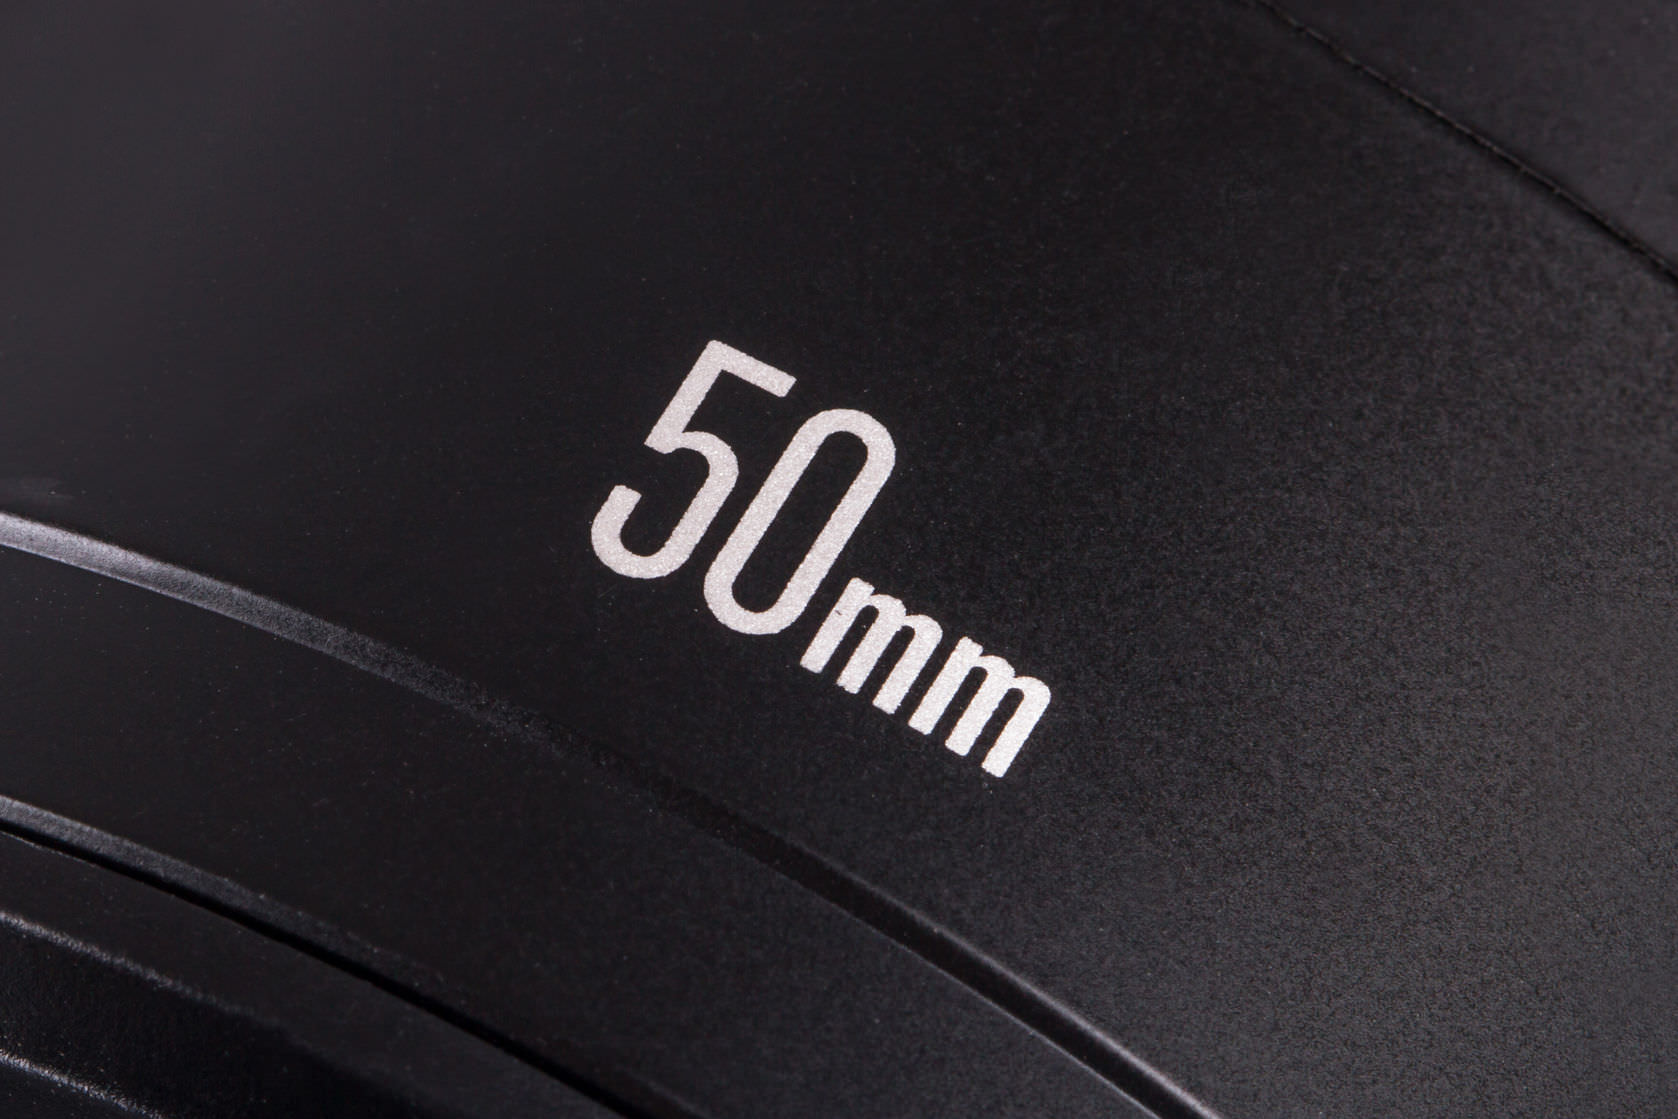 50mm Lens Closeup image